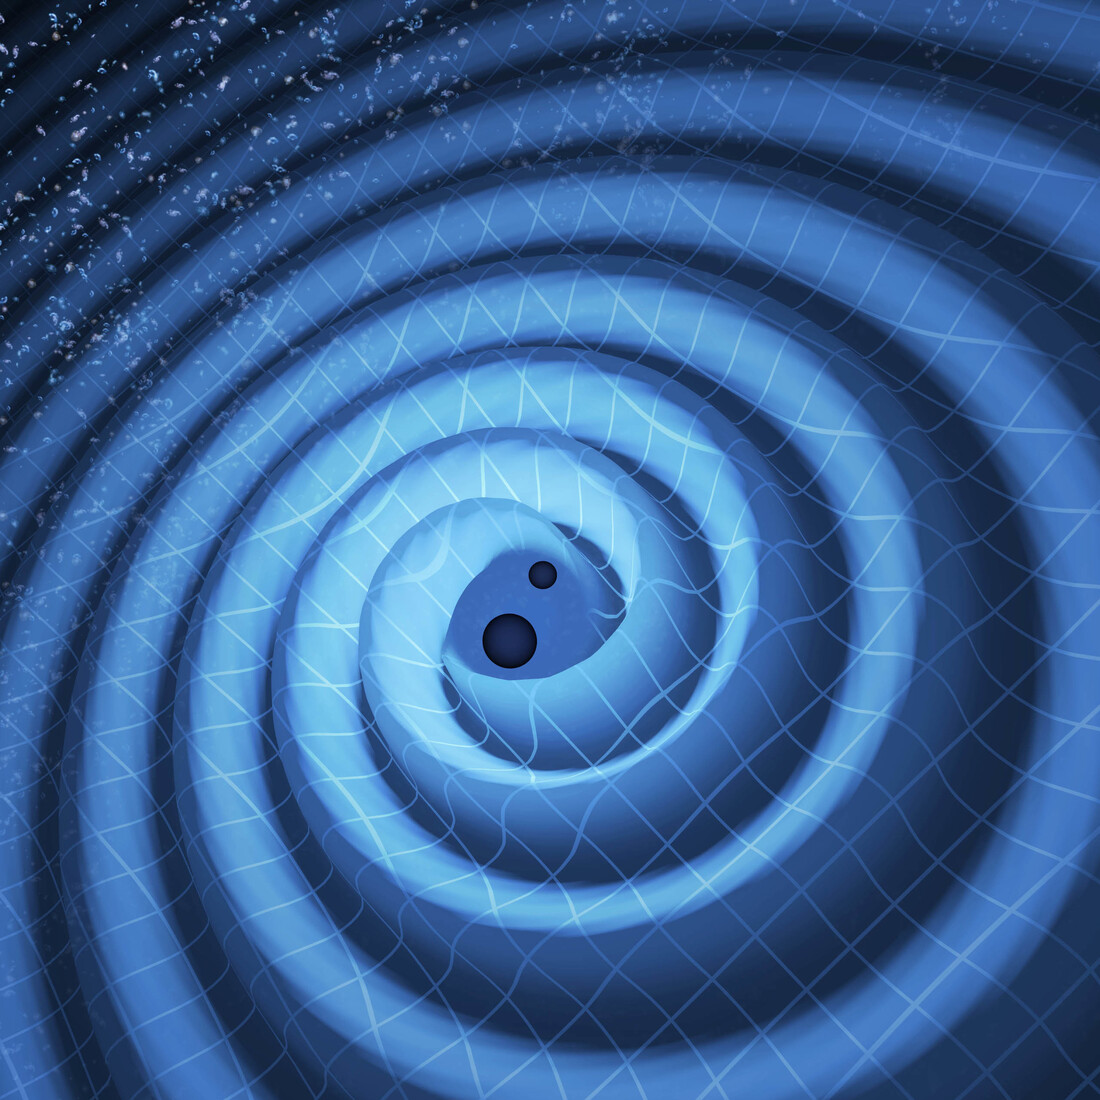 a better understanding of the mysterious black holes  third detection further compounds the mystery of why black holes collide  an  illustration of a newly detected black-hole merger, whose  we'll get a much  better understanding of the spins of the black hole population.